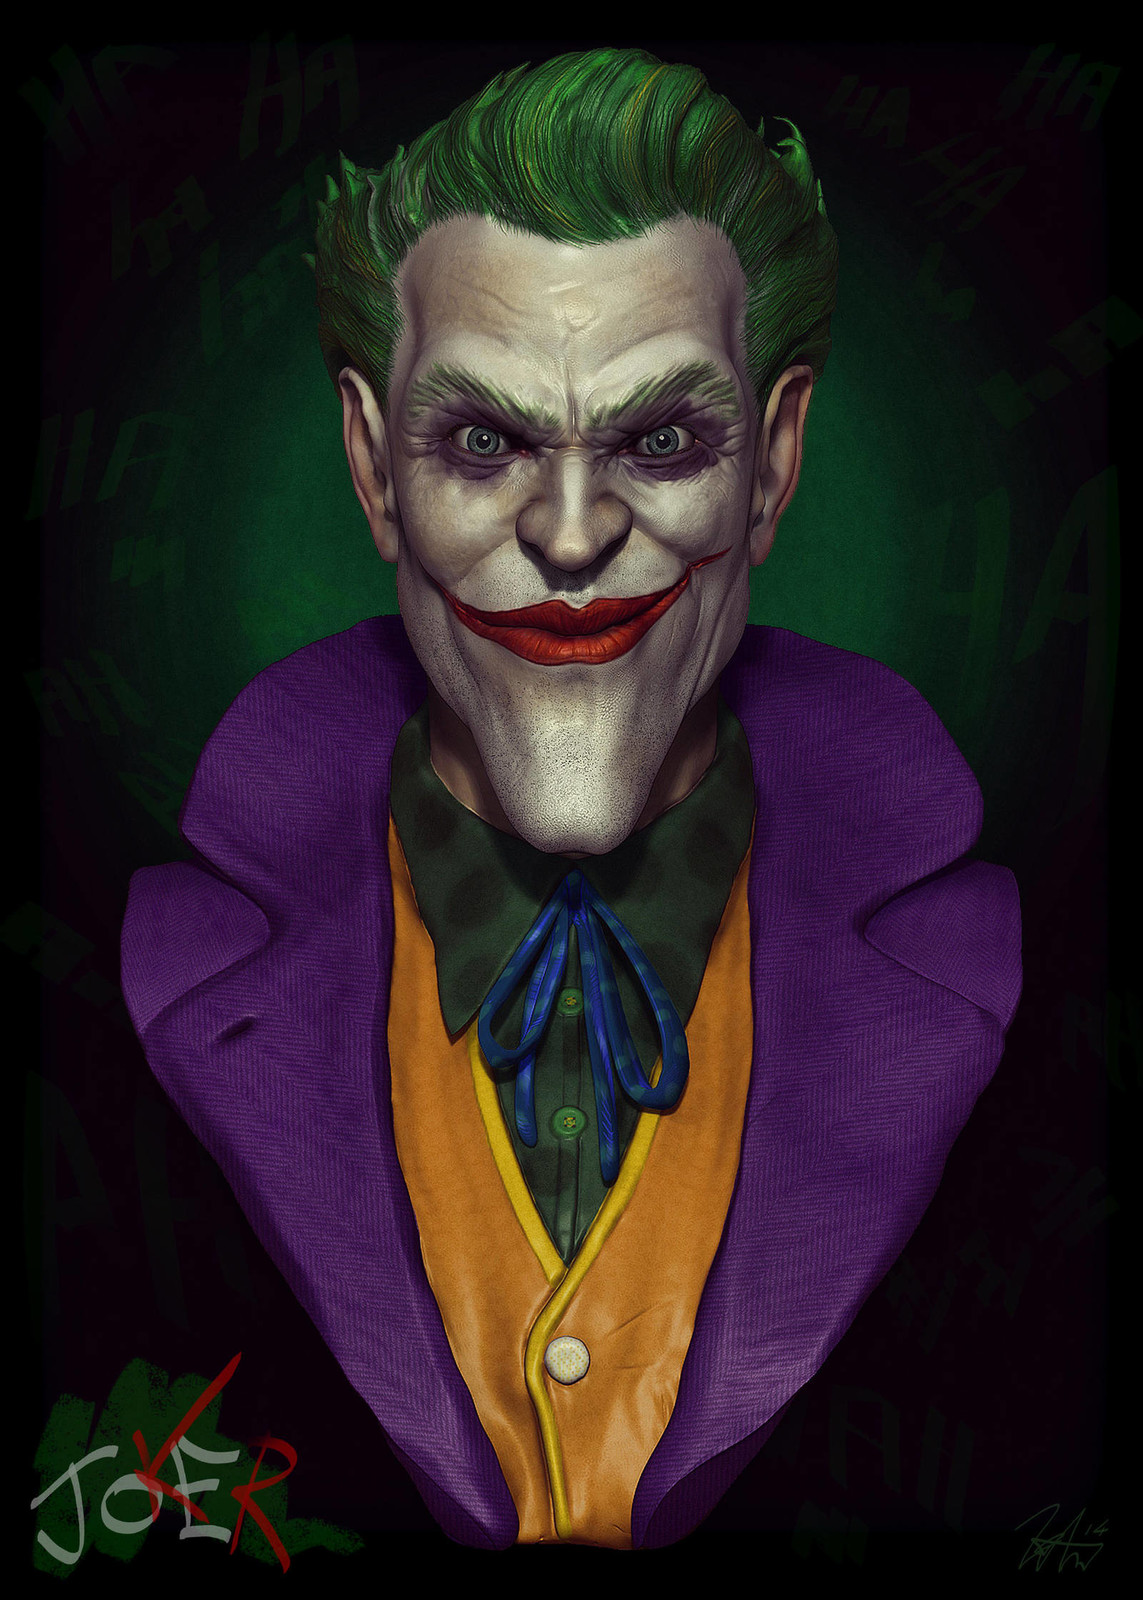 joKeR - Bust Sculpture